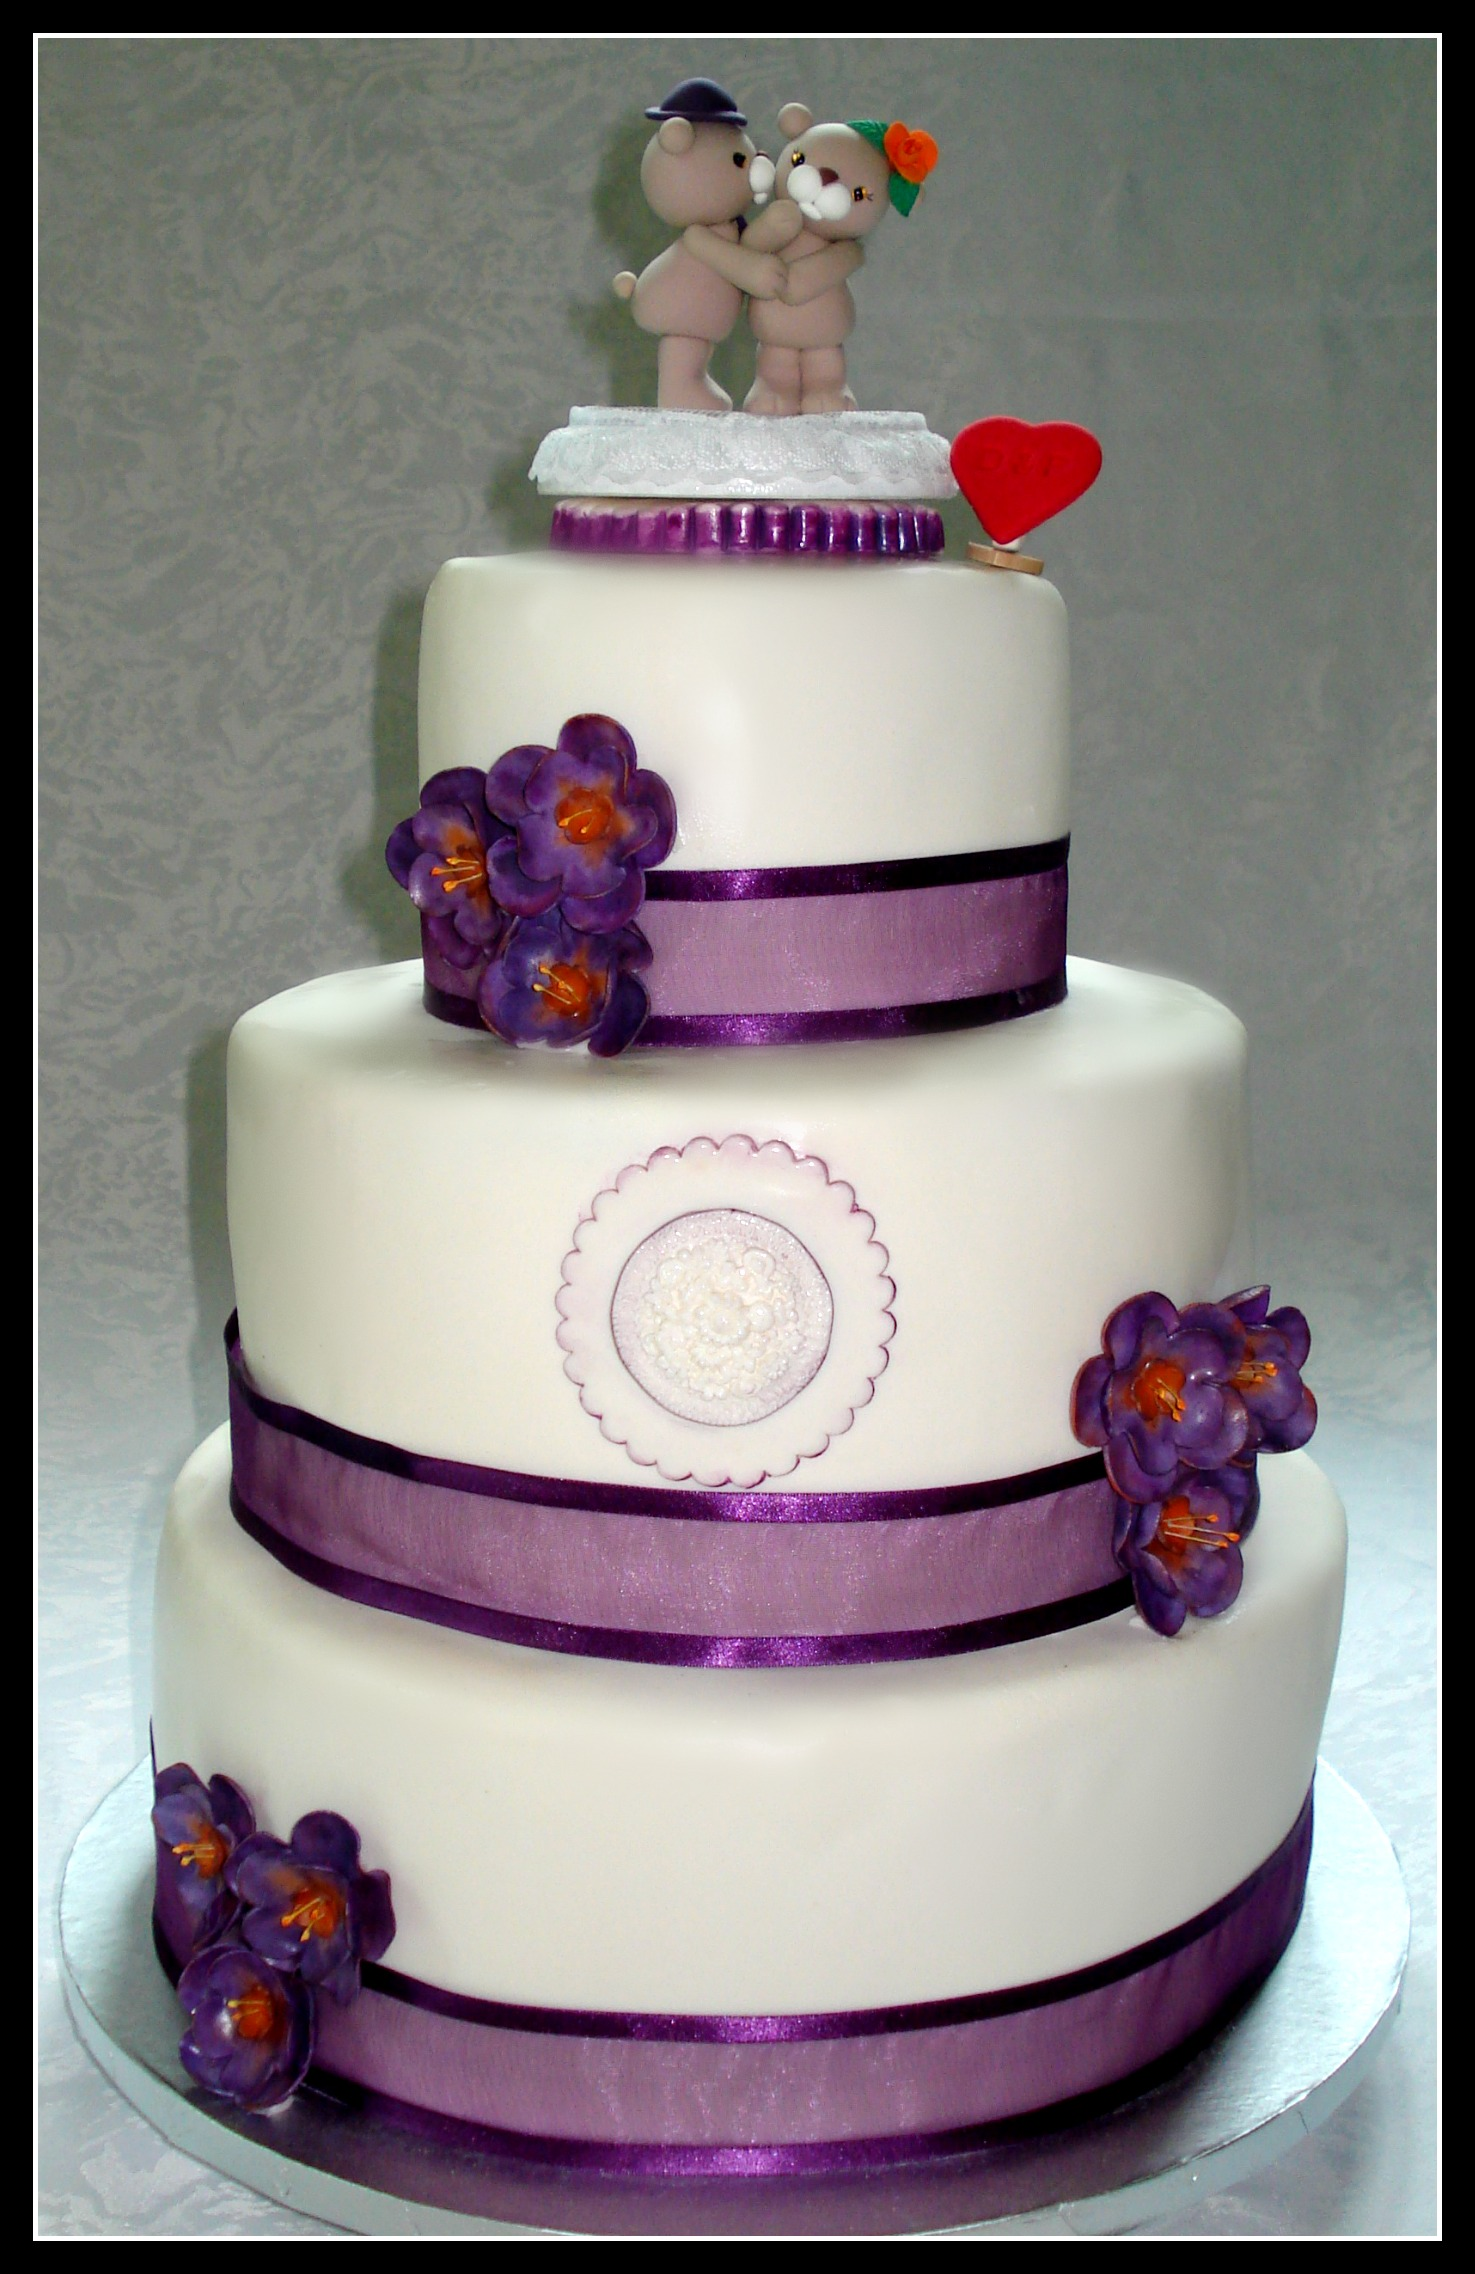 Wedding Cake Free Images at Clkercom vector clip art